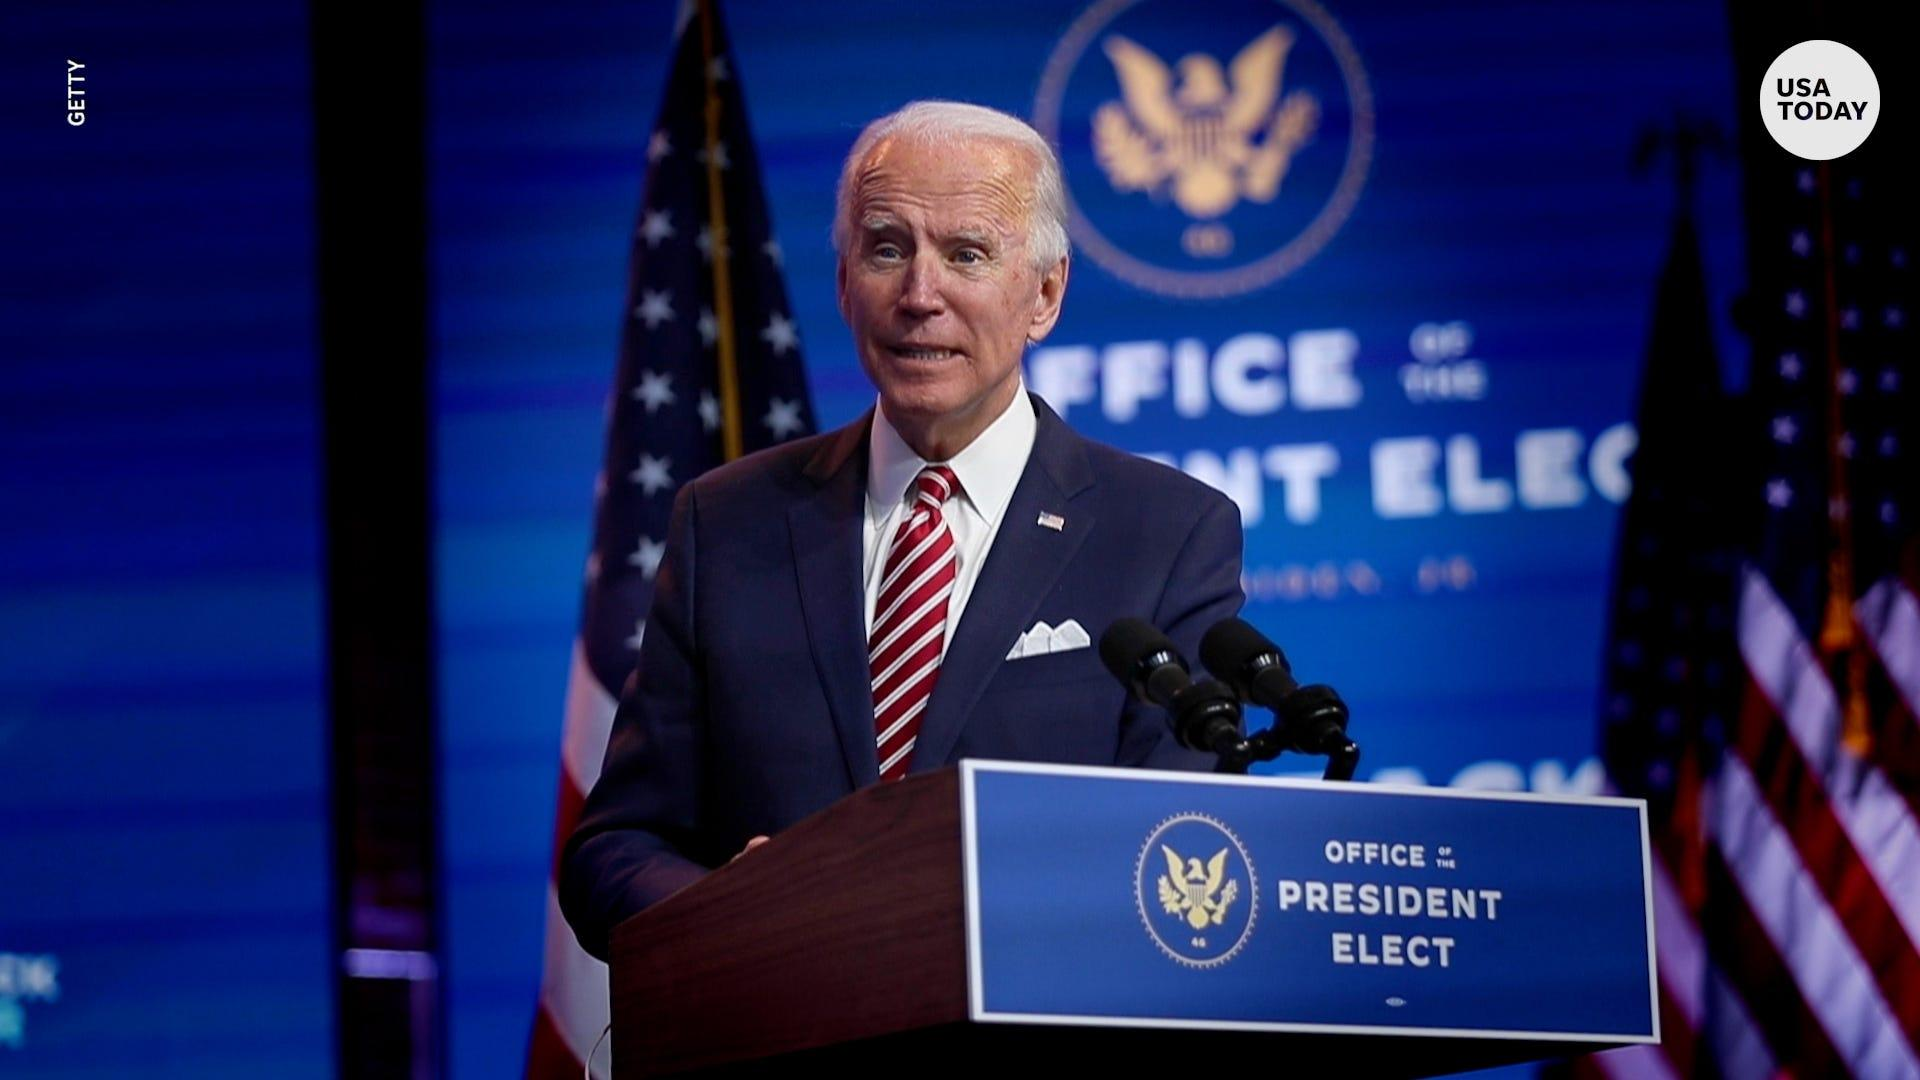 'Does nothing to save Main Street': Biden faces criticism from GOP, progressives on COVID-19 relief package